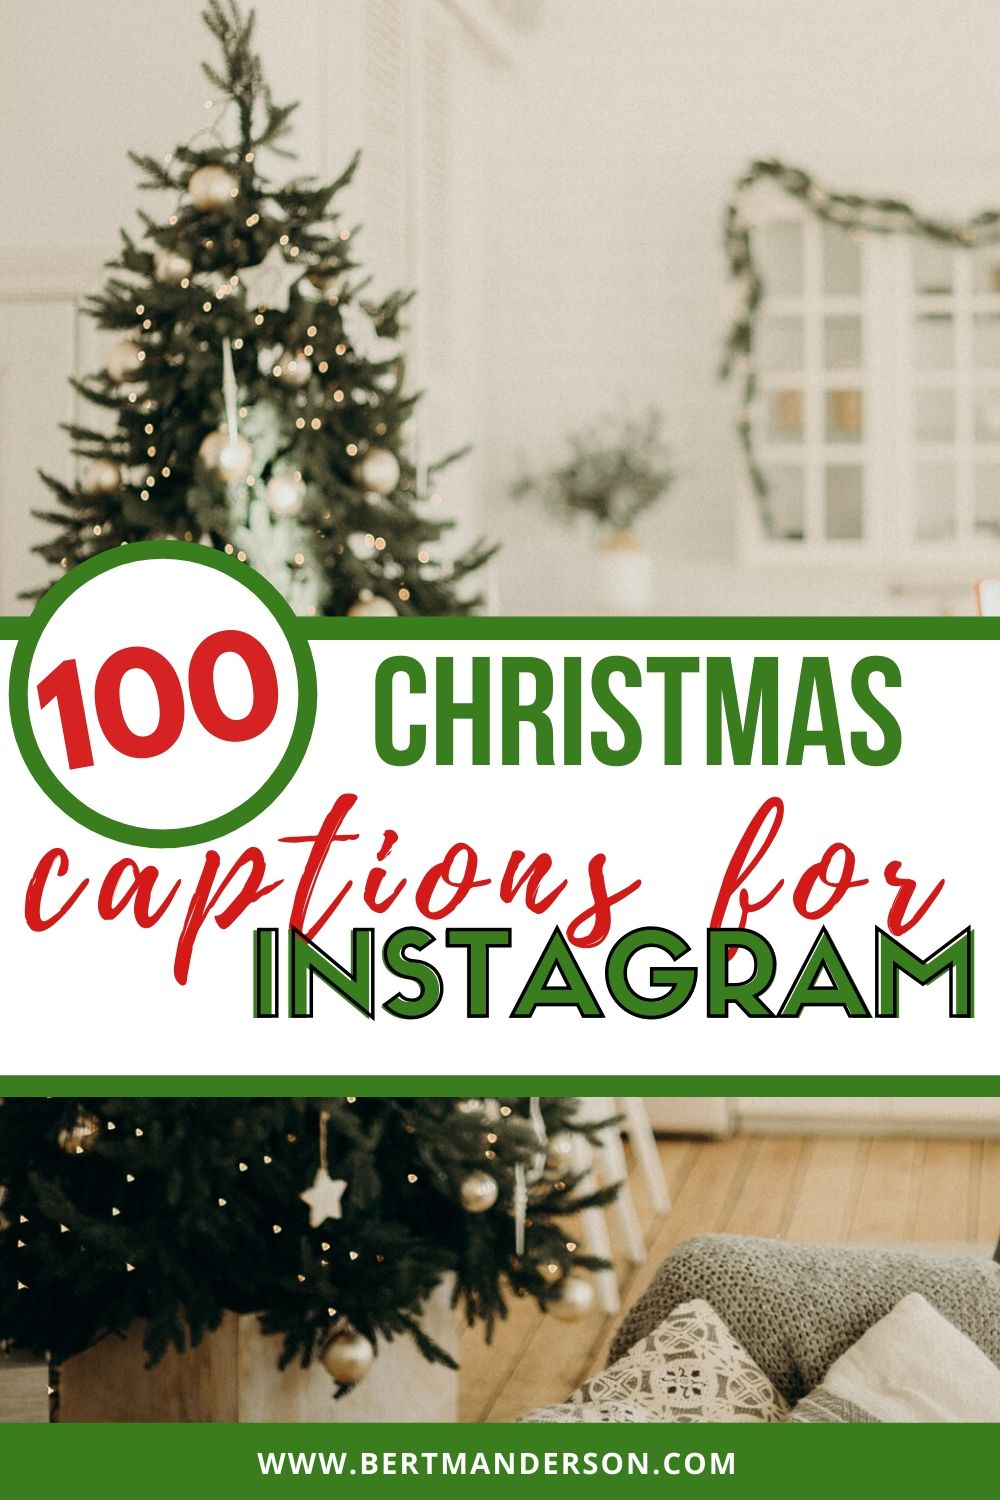 100 Christmas captions for Instagram that you absolutely need to use this holiday season. #christmasquotes #instagramcaptions #christmascaptions #quotesforinstagram